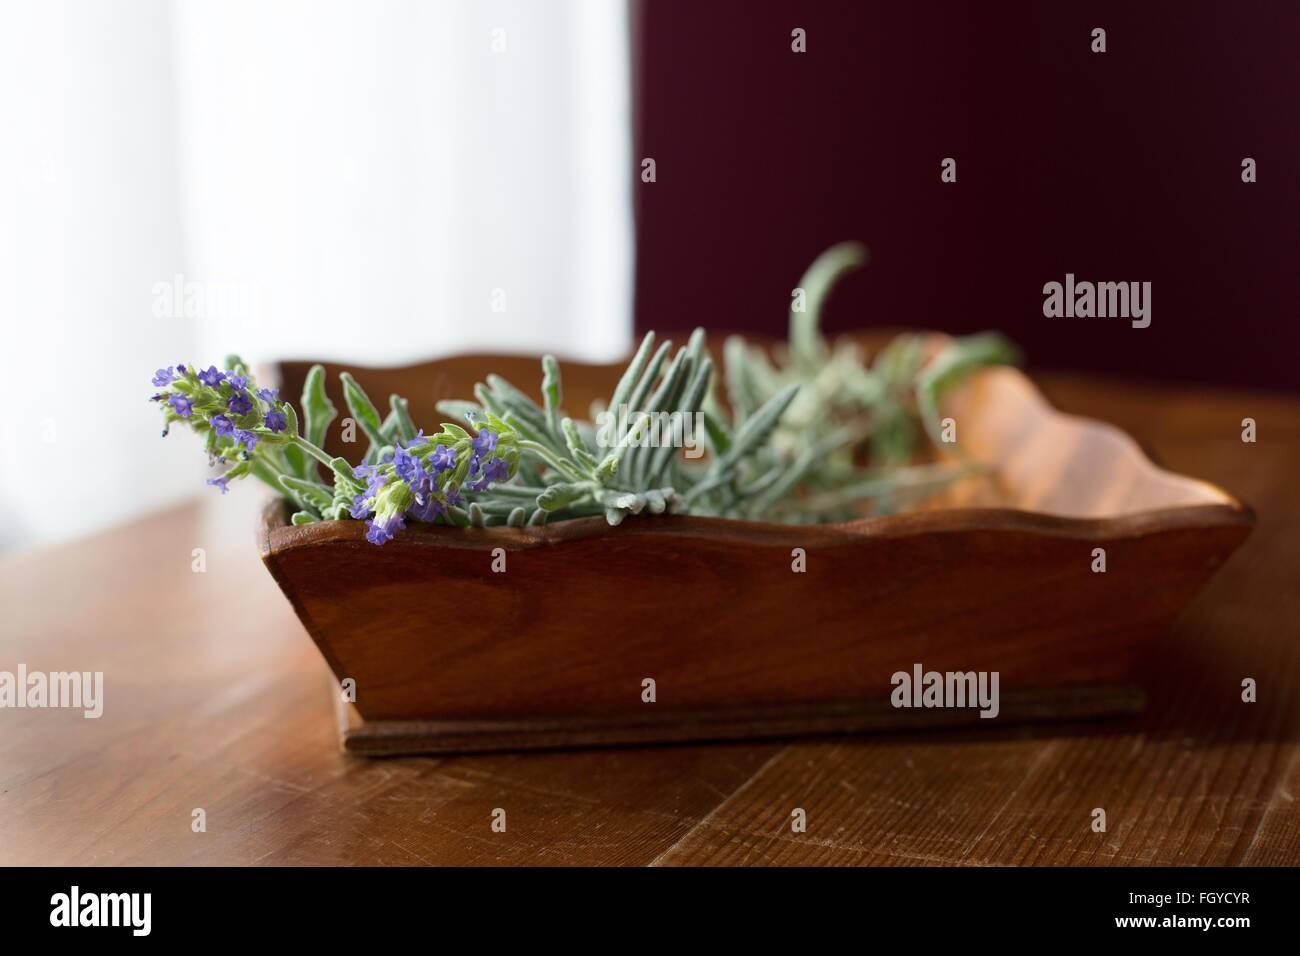 A wooden container full of lavender sprigs. - Stock Image